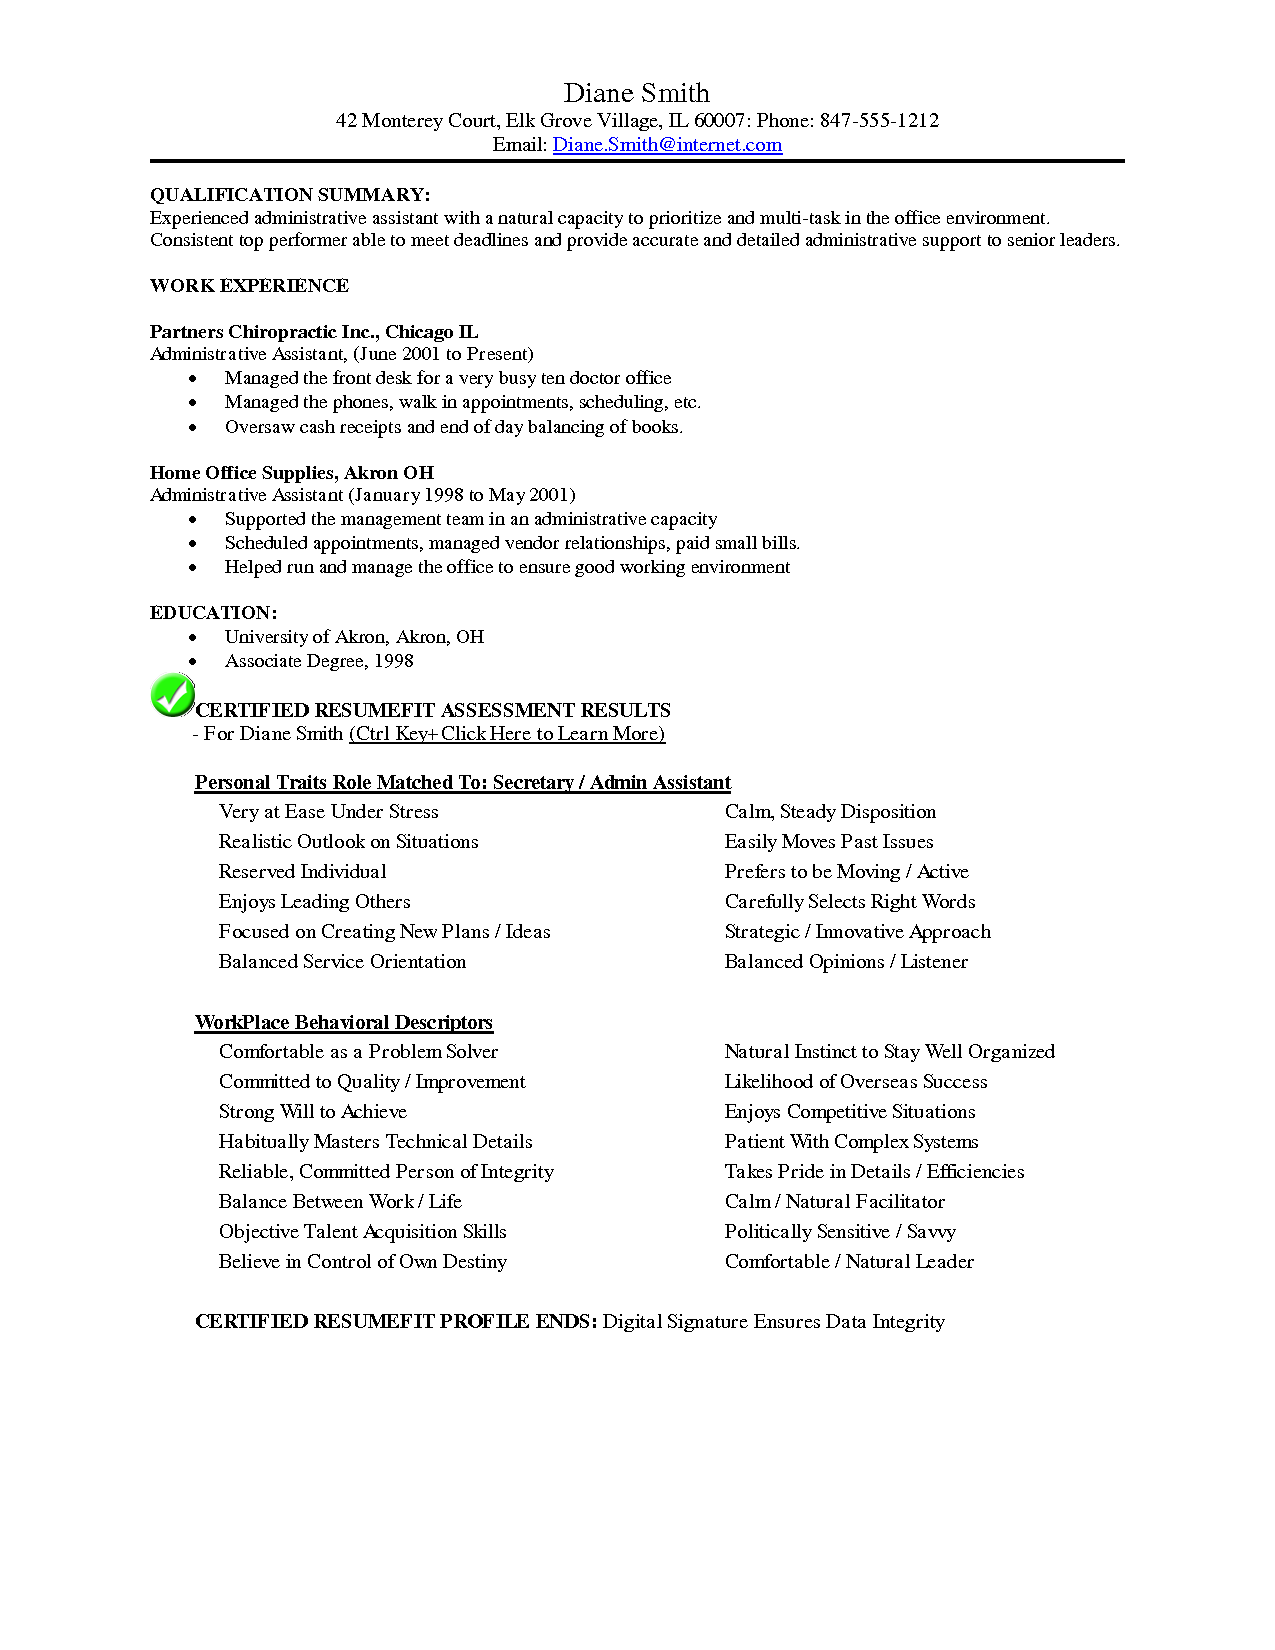 Cover Letter For Resumes Examples Cover Letter How To Write A Cover